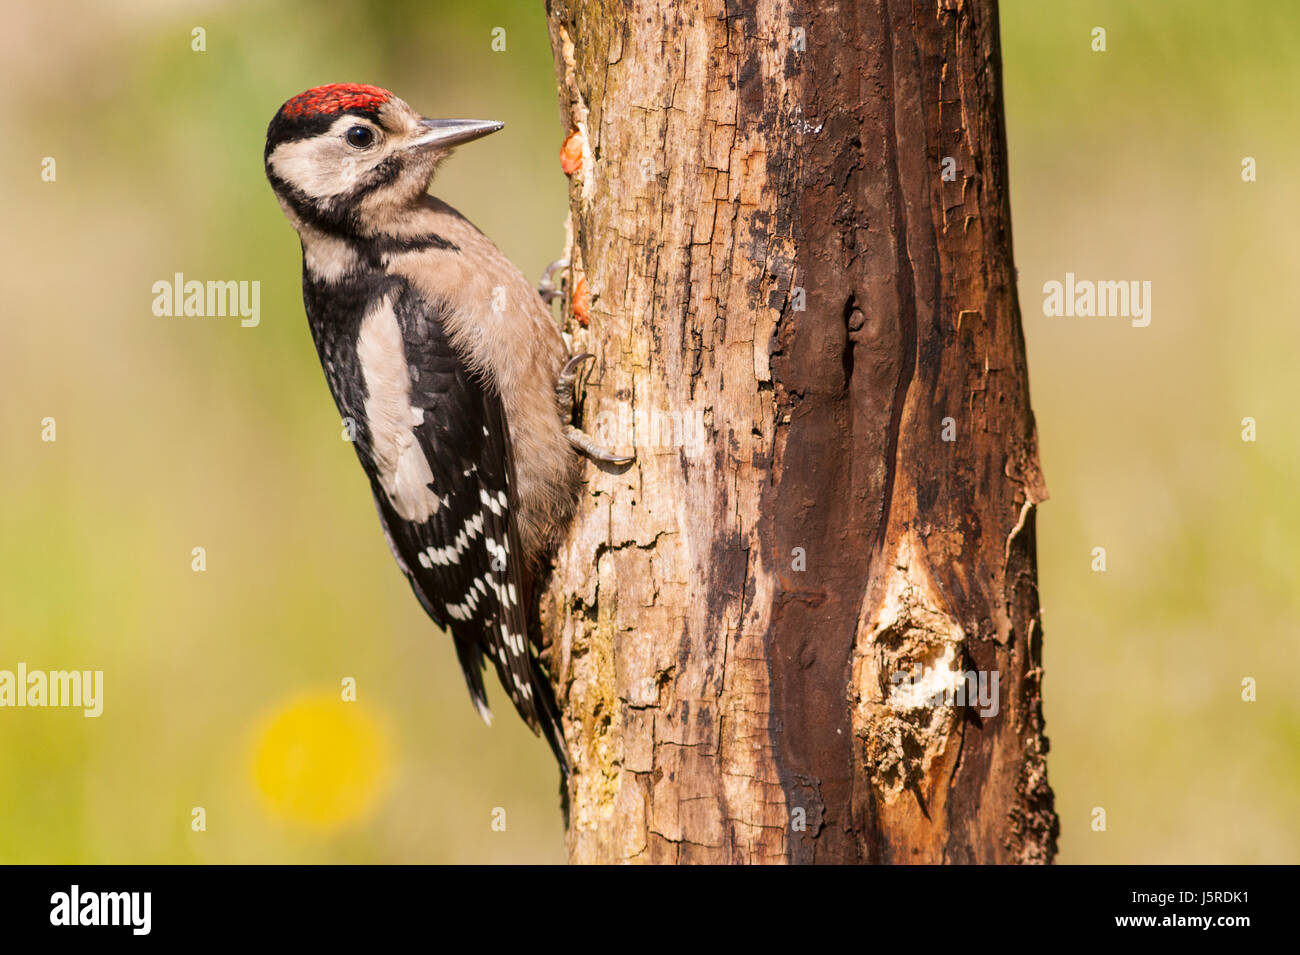 A young Great Spotted Woodpecker (Dendrocopos major) on a tree in the uk - Stock Image